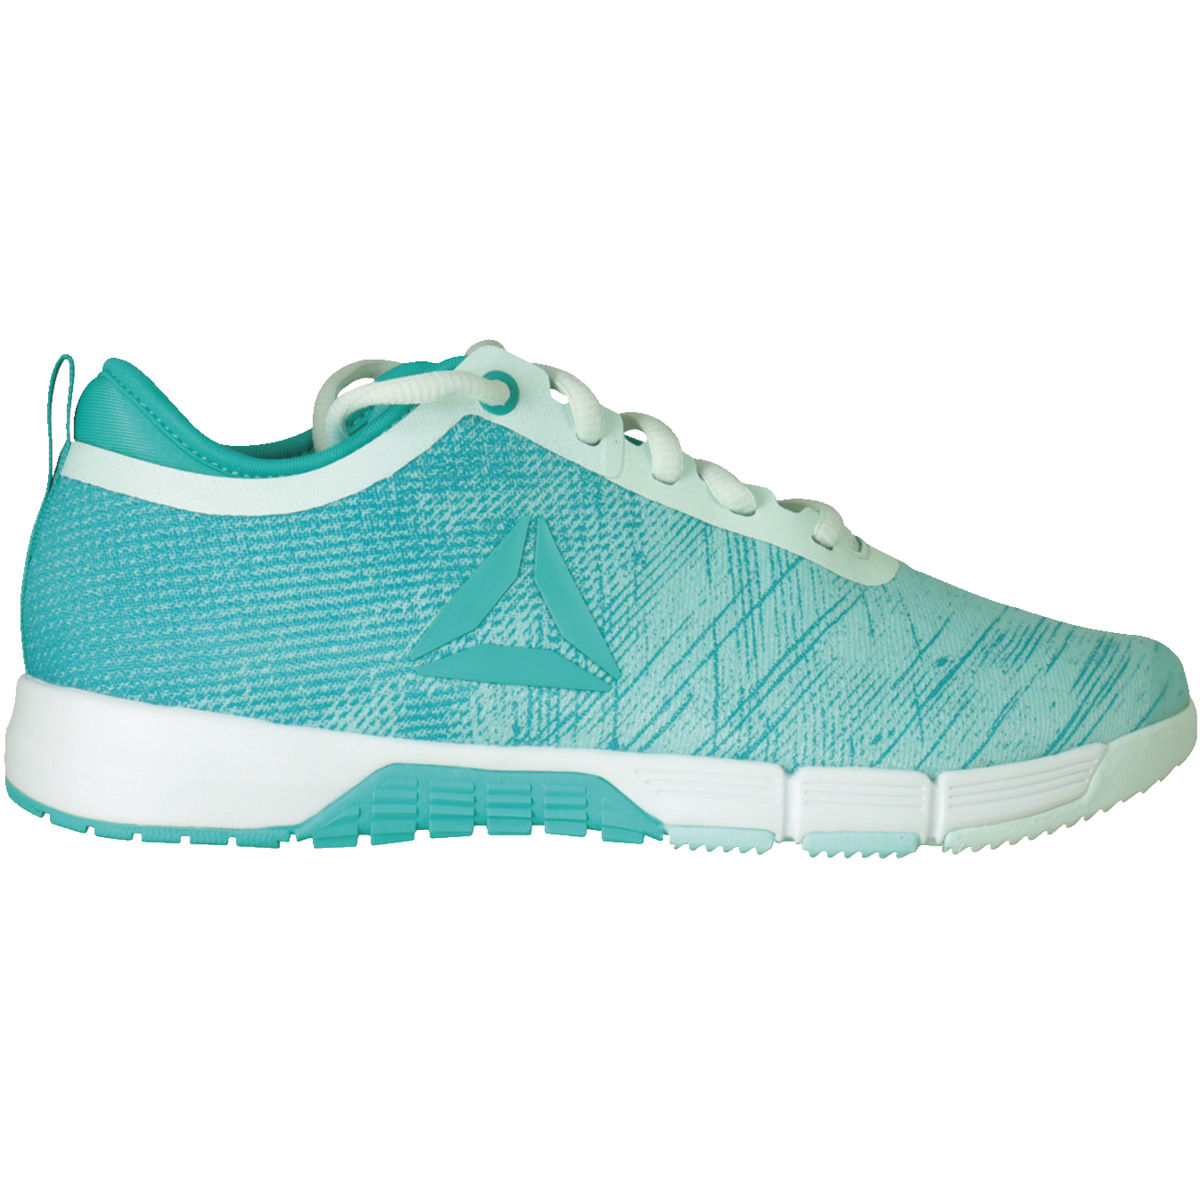 Reebok Women's Grace Shoes - UK 6.5 BLUE LAGOON/SOLID TE